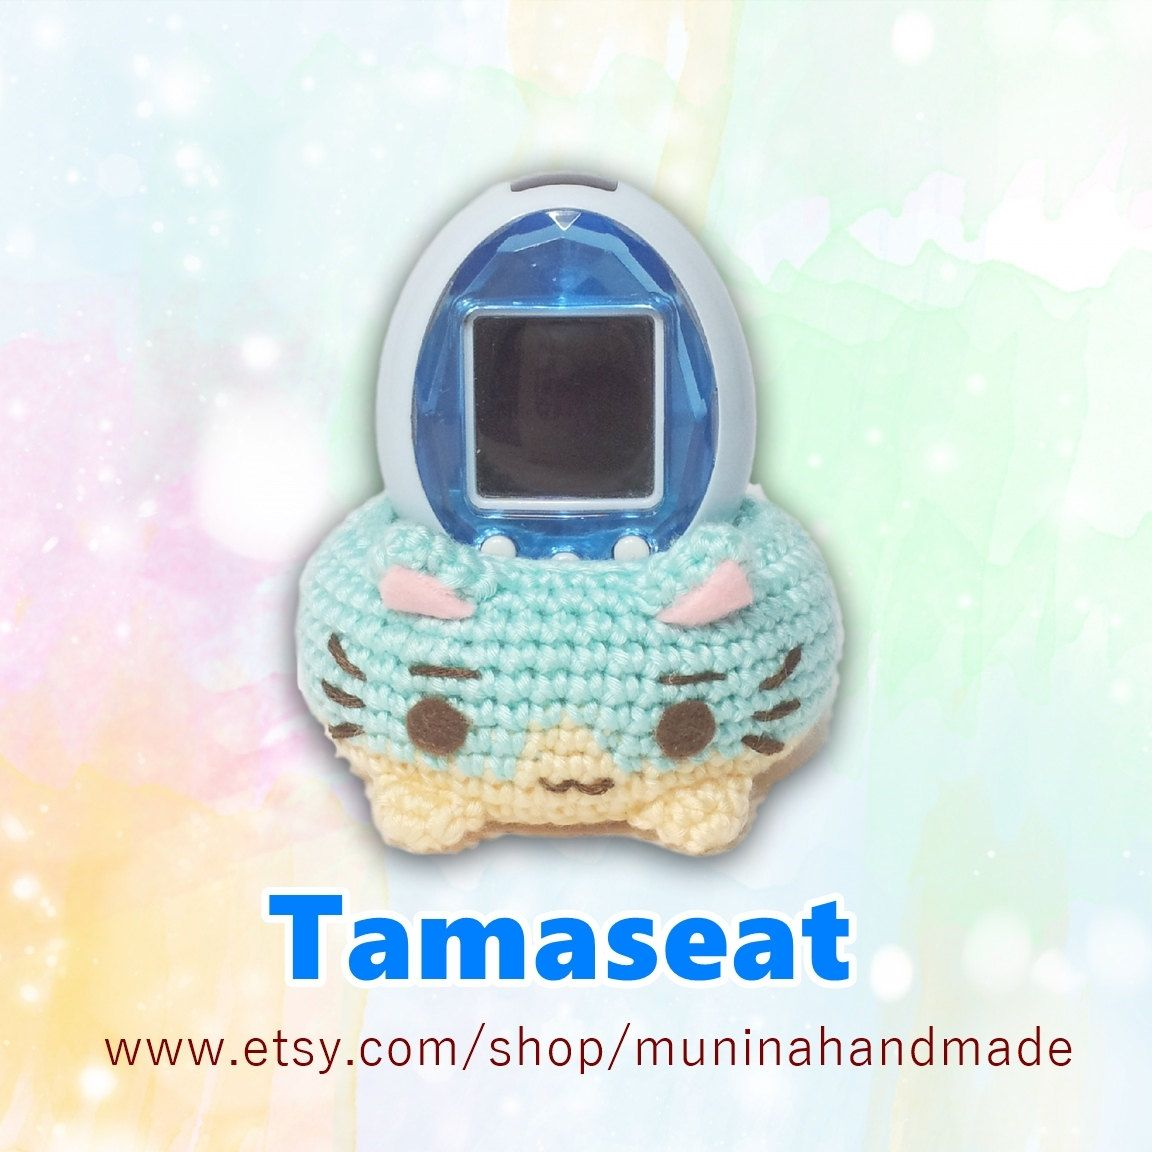 Blue soda cat tamaseat tamaseat tamagotchi cradle tamagotchi blue soda cat tamaseat tamaseat tamagotchi cradle tamagotchi stand by muninahandmade on etsy geenschuldenfo Image collections